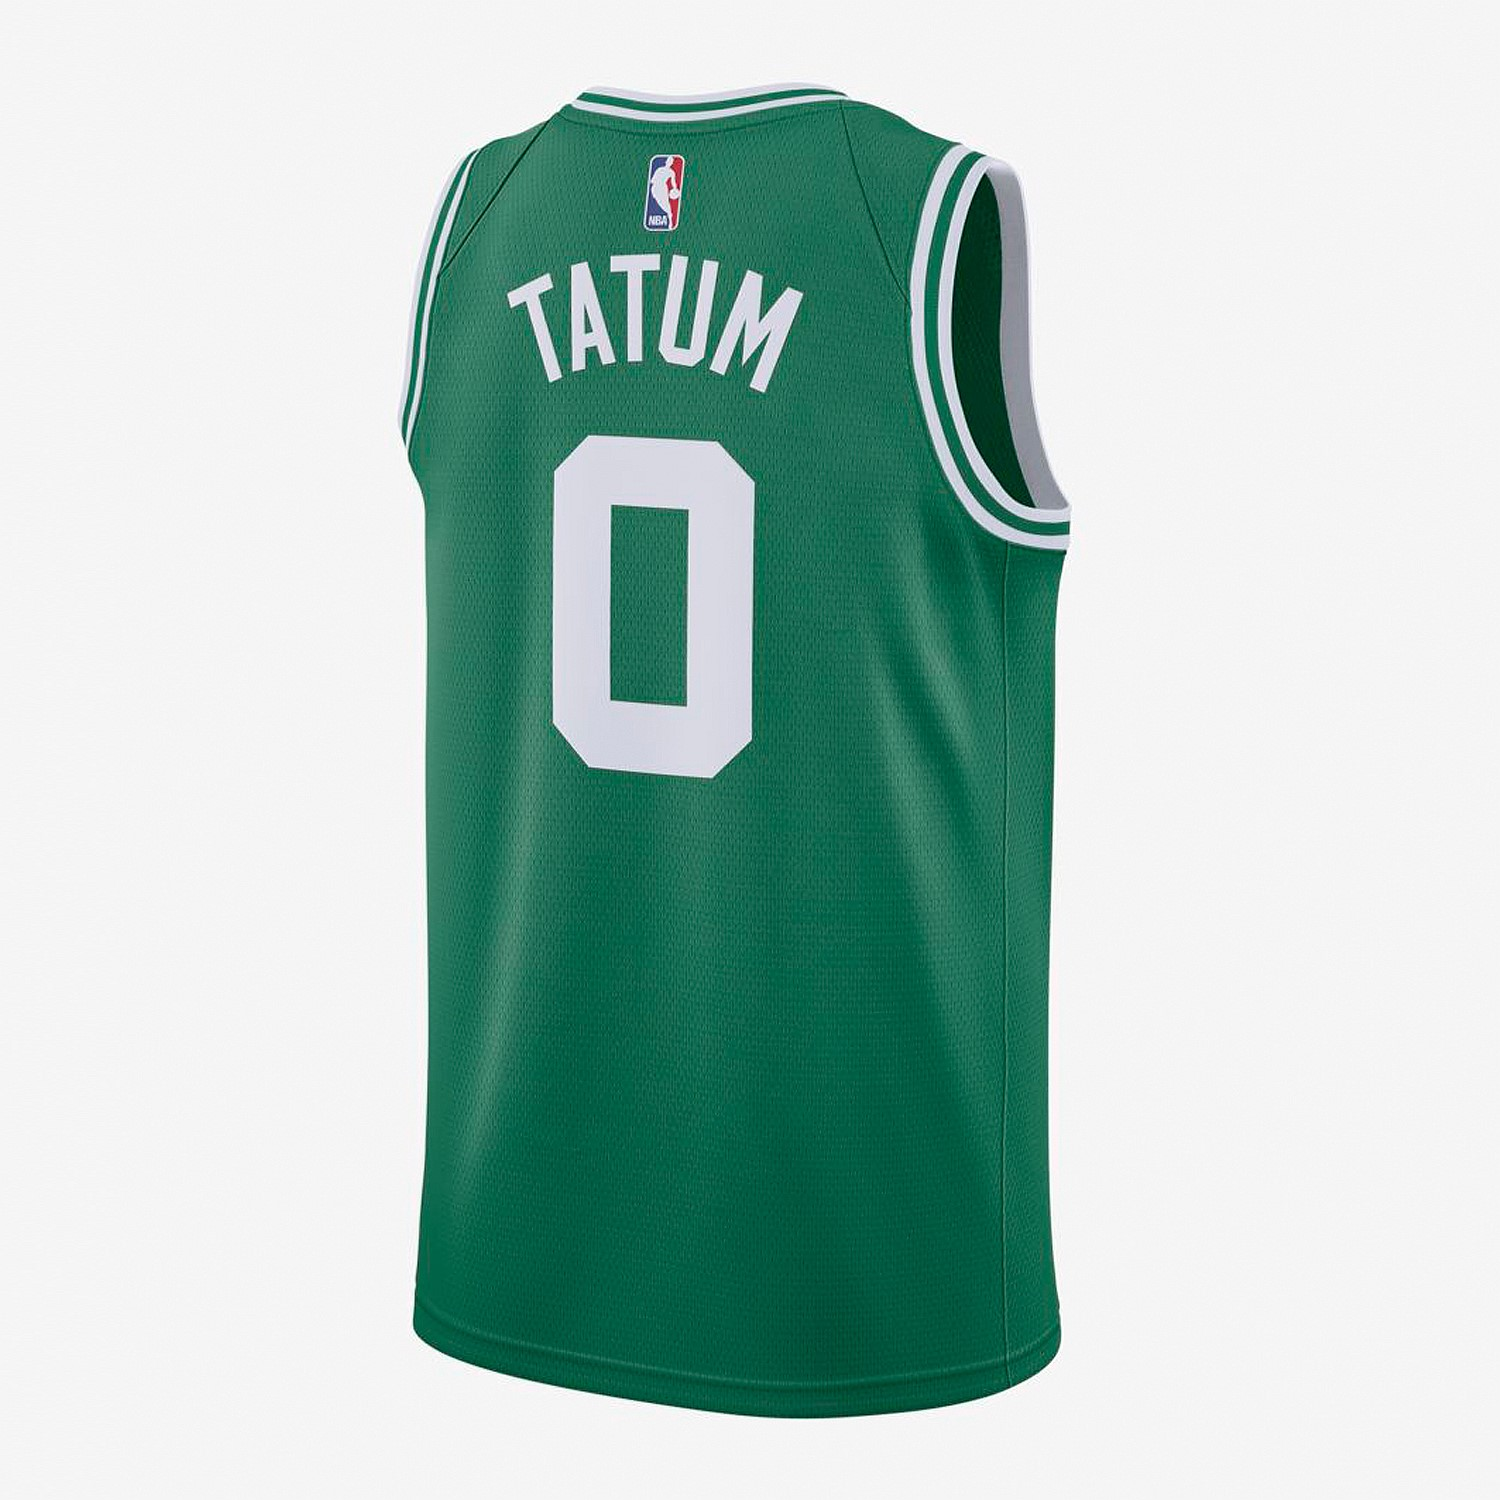 newest 6f981 0cf2a Boston Celtics NBA Jersey - Tatum